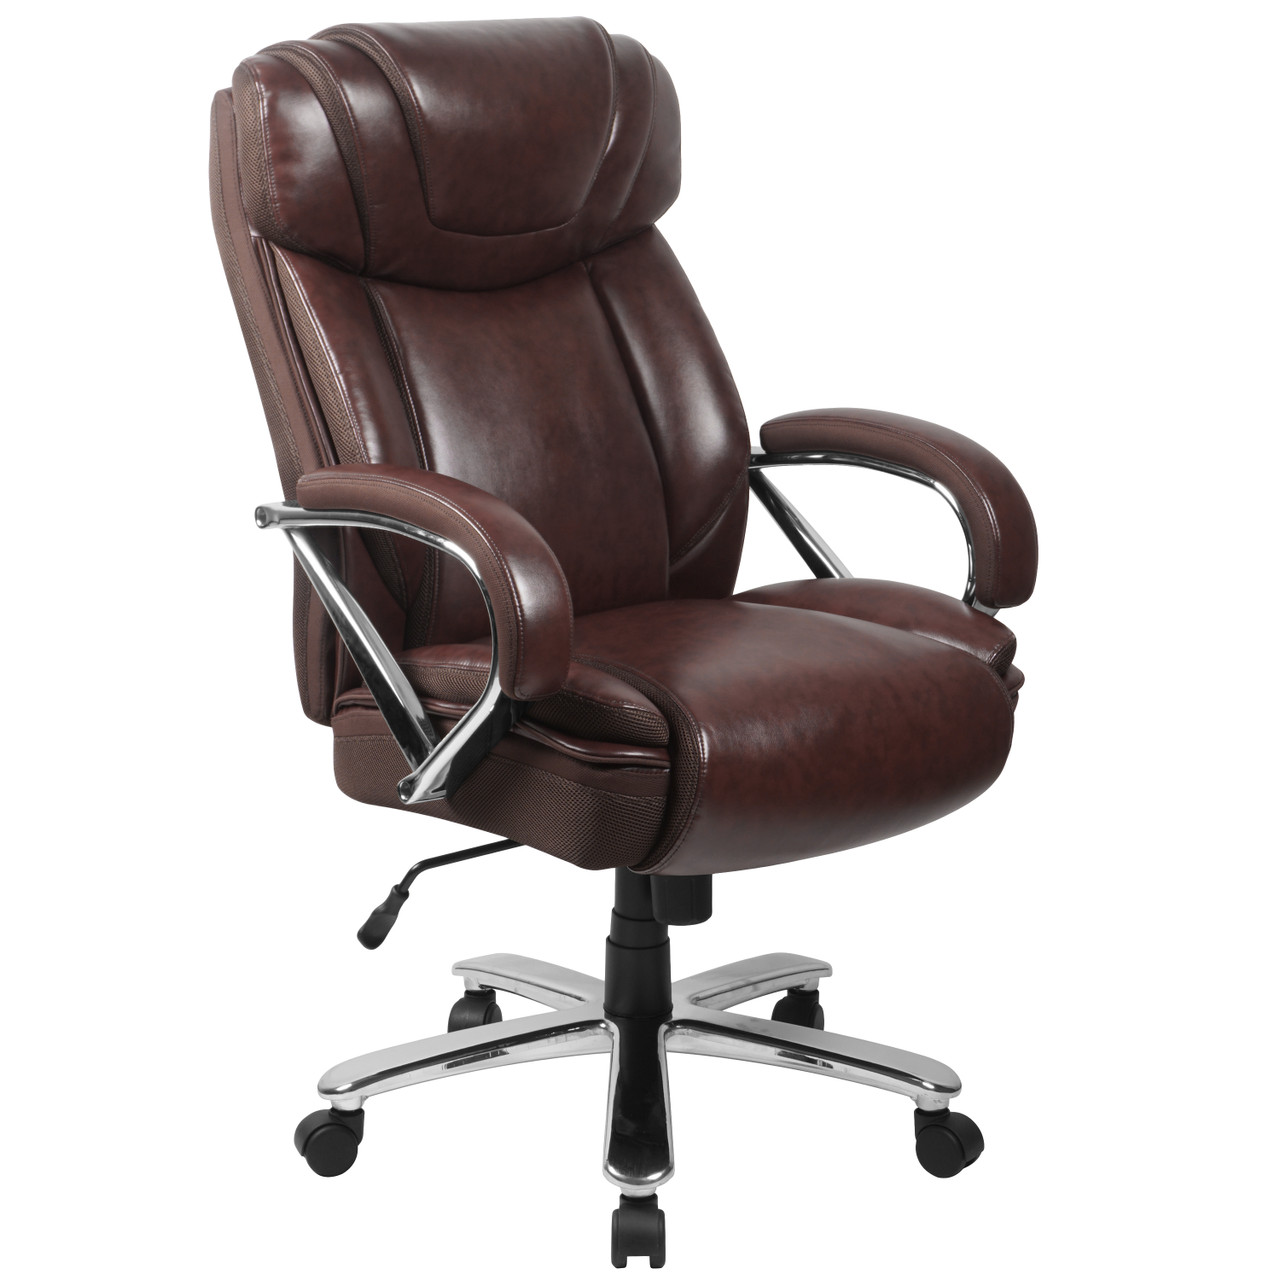 Picture of: The Big Tall 500 Lb Rated Brown Leather Executive Swivel Ergonomic Office Chair With Extra Wide Seat Available At Acf Wholesale Serving Columbus Ms